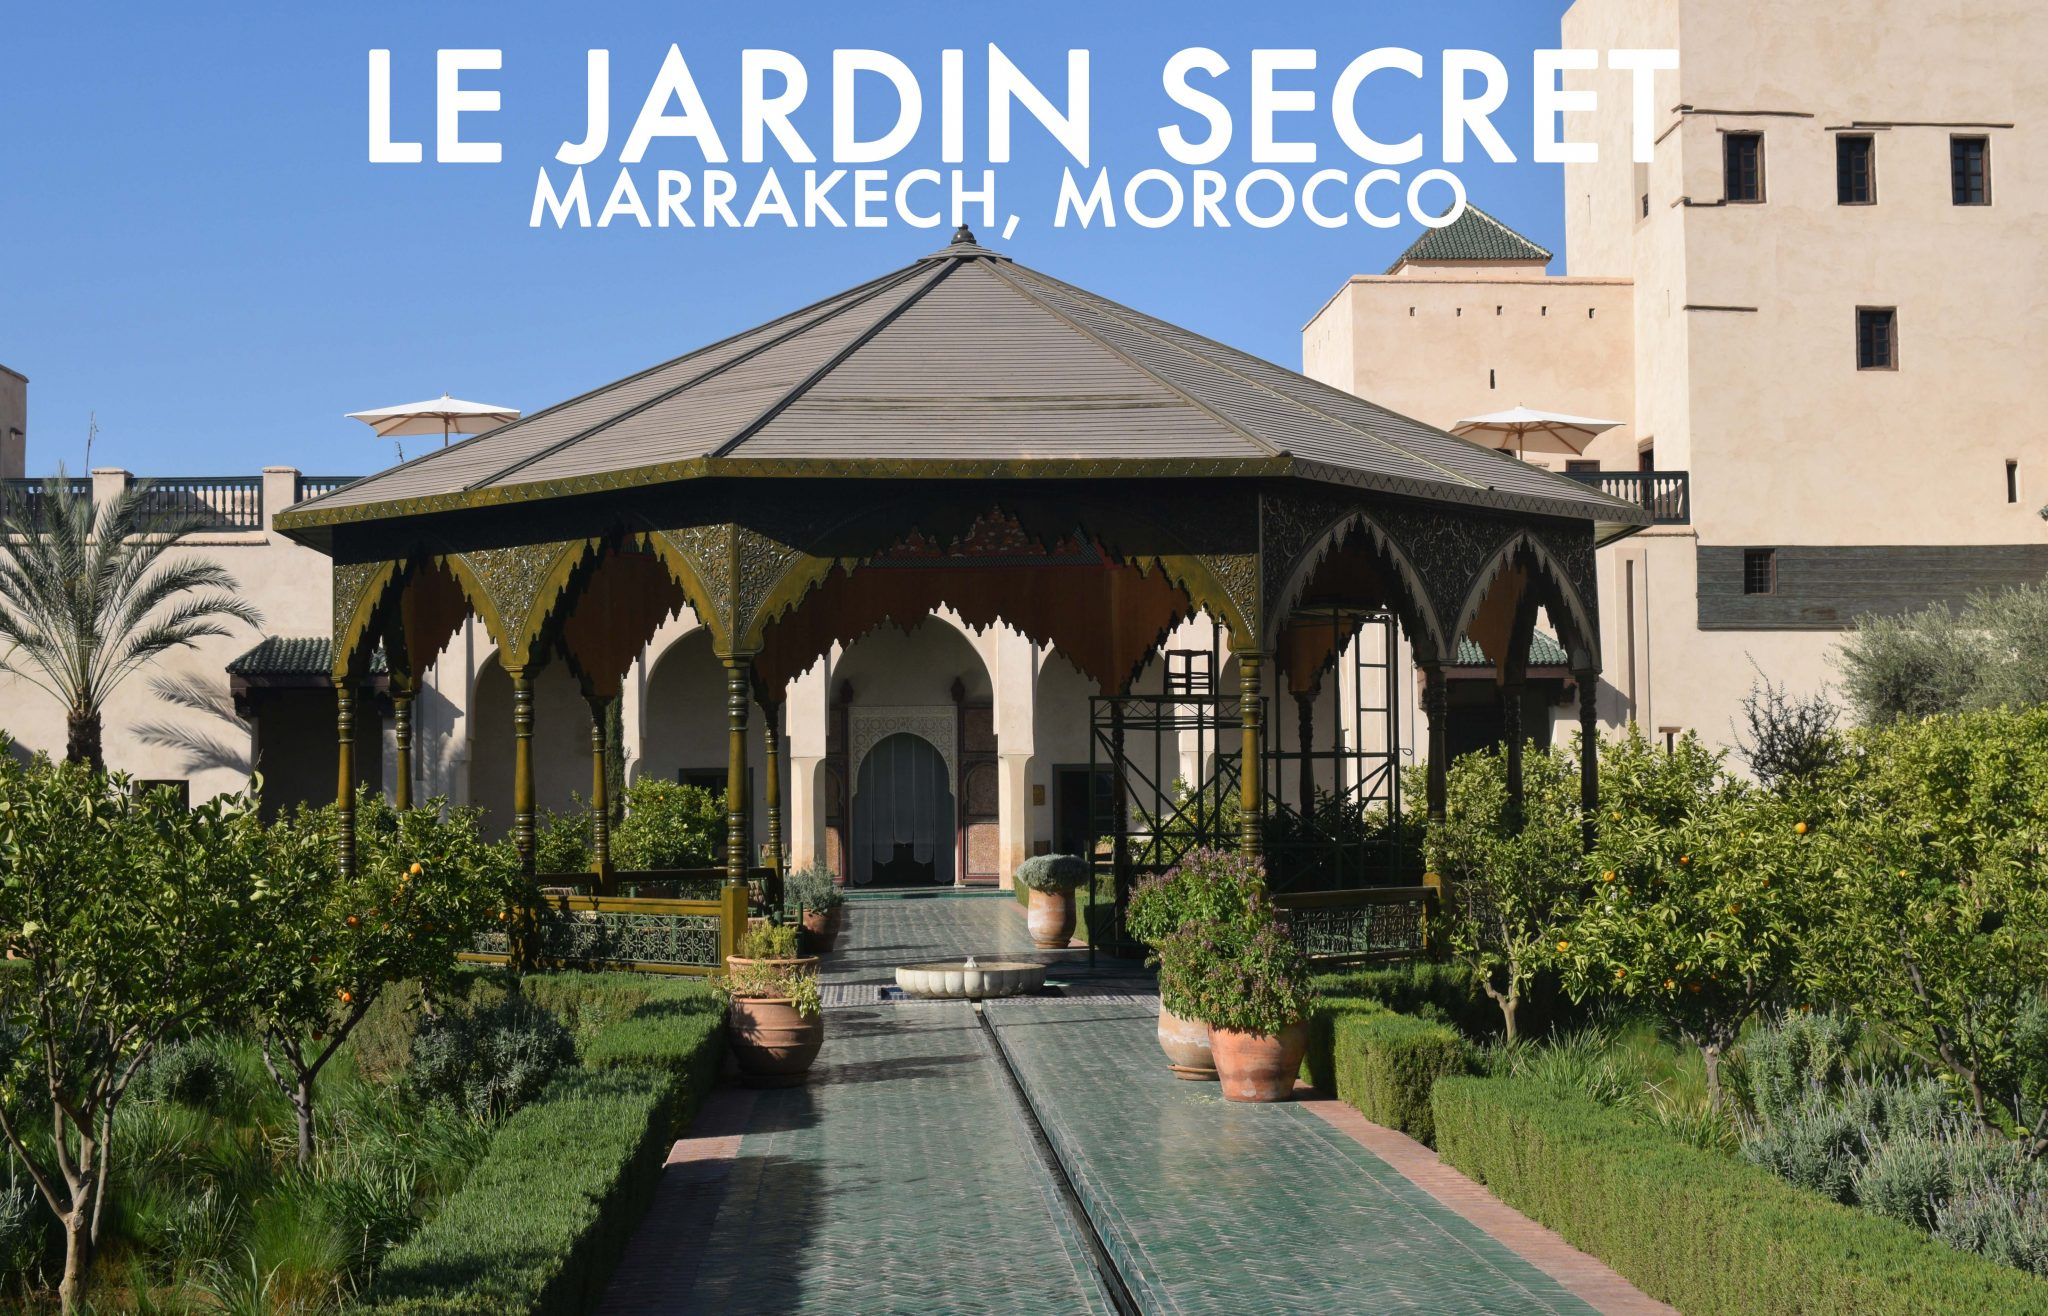 an oasis in the medina le jardin secret - Le Jardin